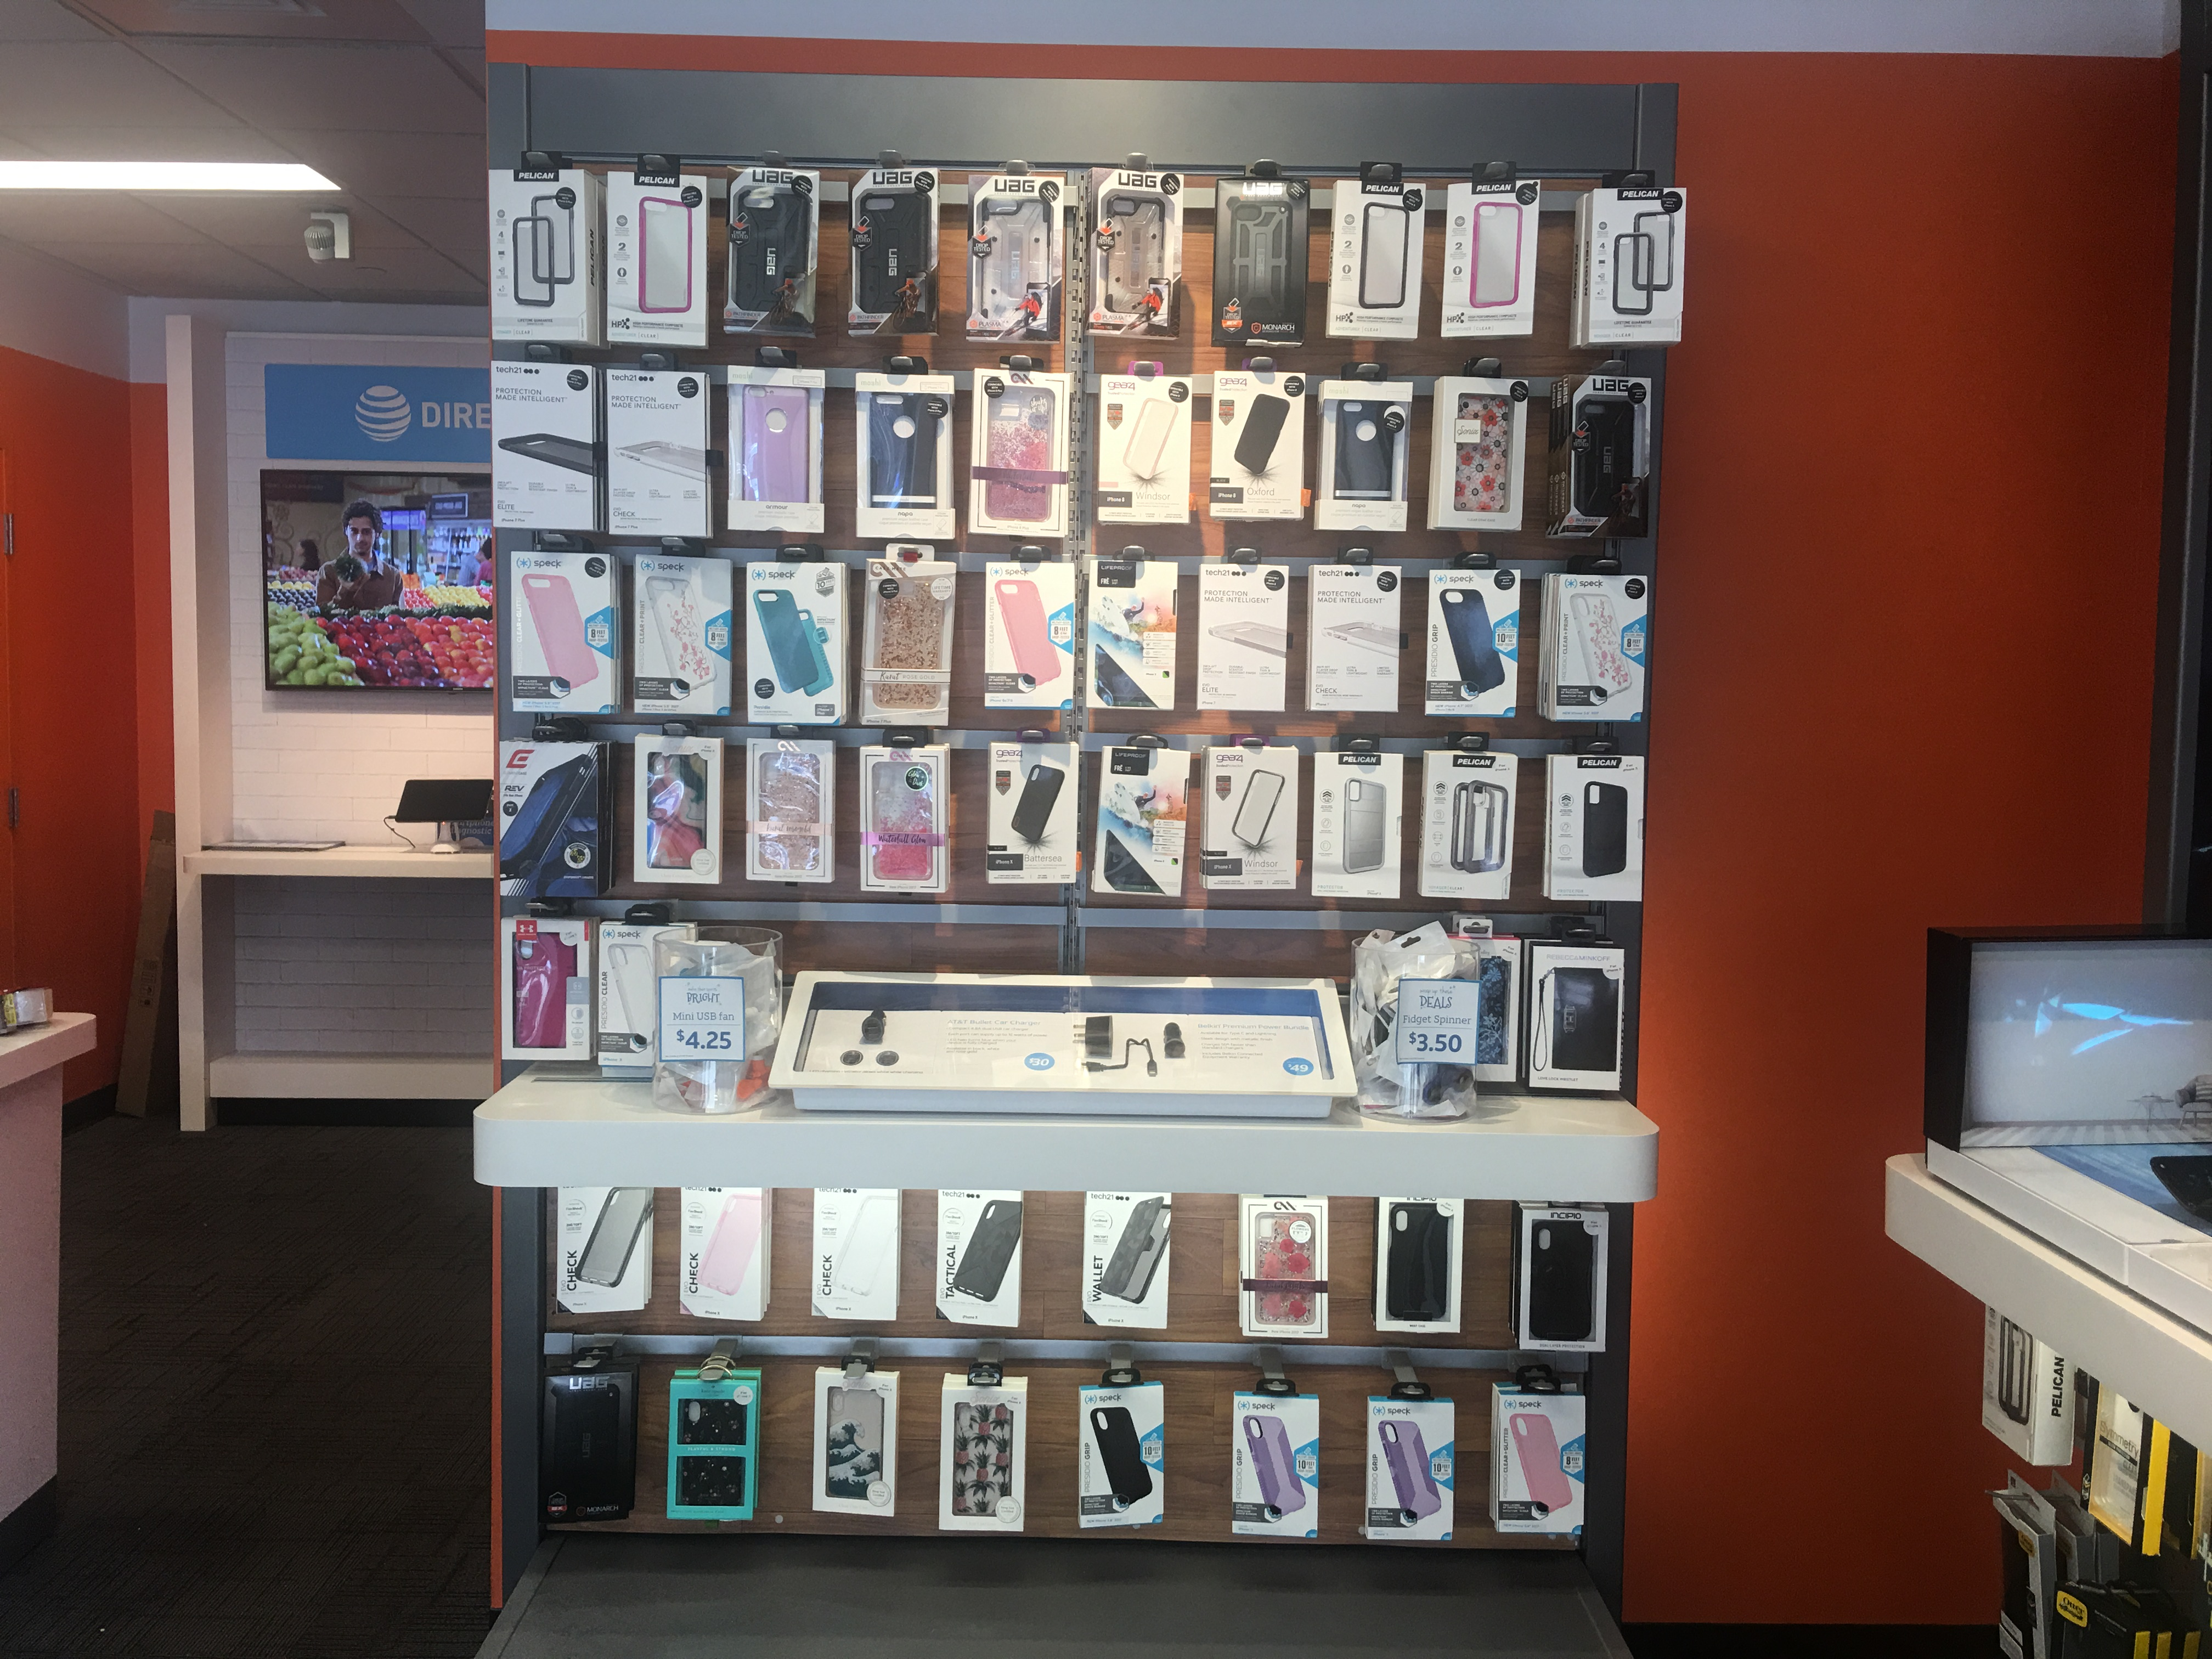 AT&T Store image 10